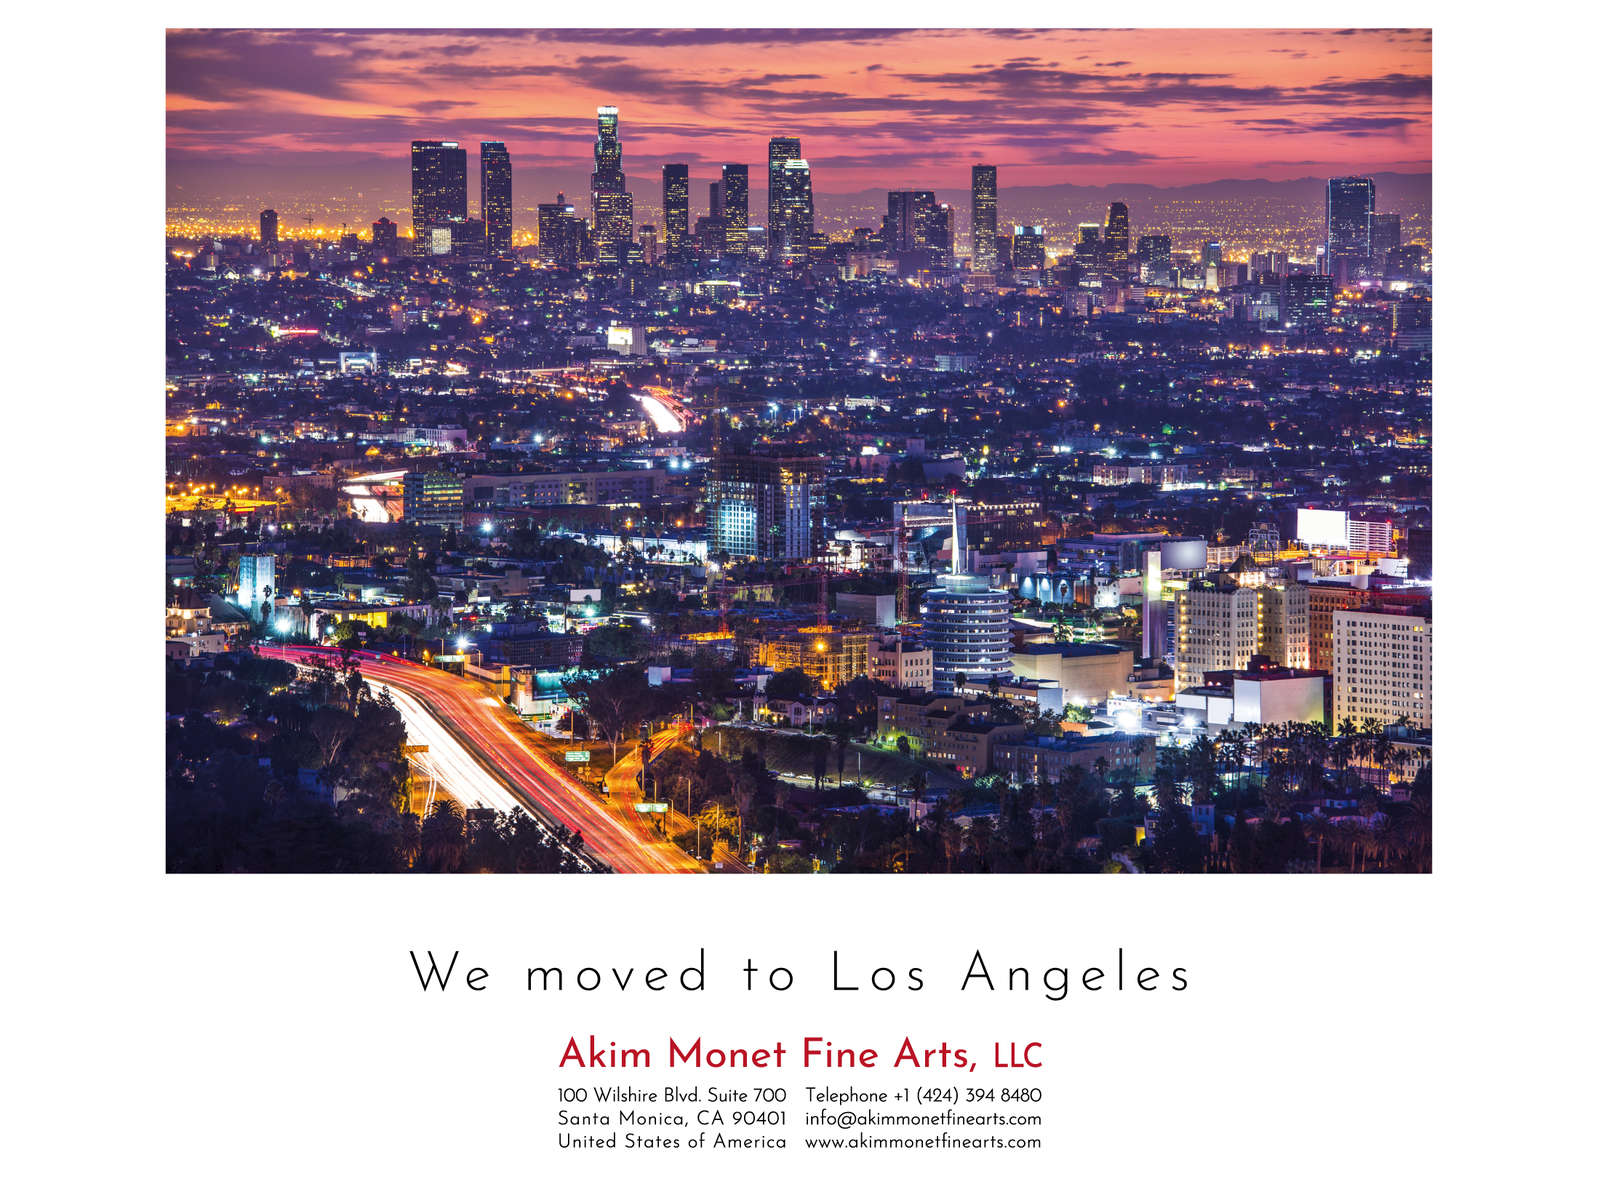 Following a decade in Berlin, we moved to Los Angeles. Please read here my letter to our faithful gallery friends.Akim Monet, Los Angeleswww.akimmonetfinearts.com